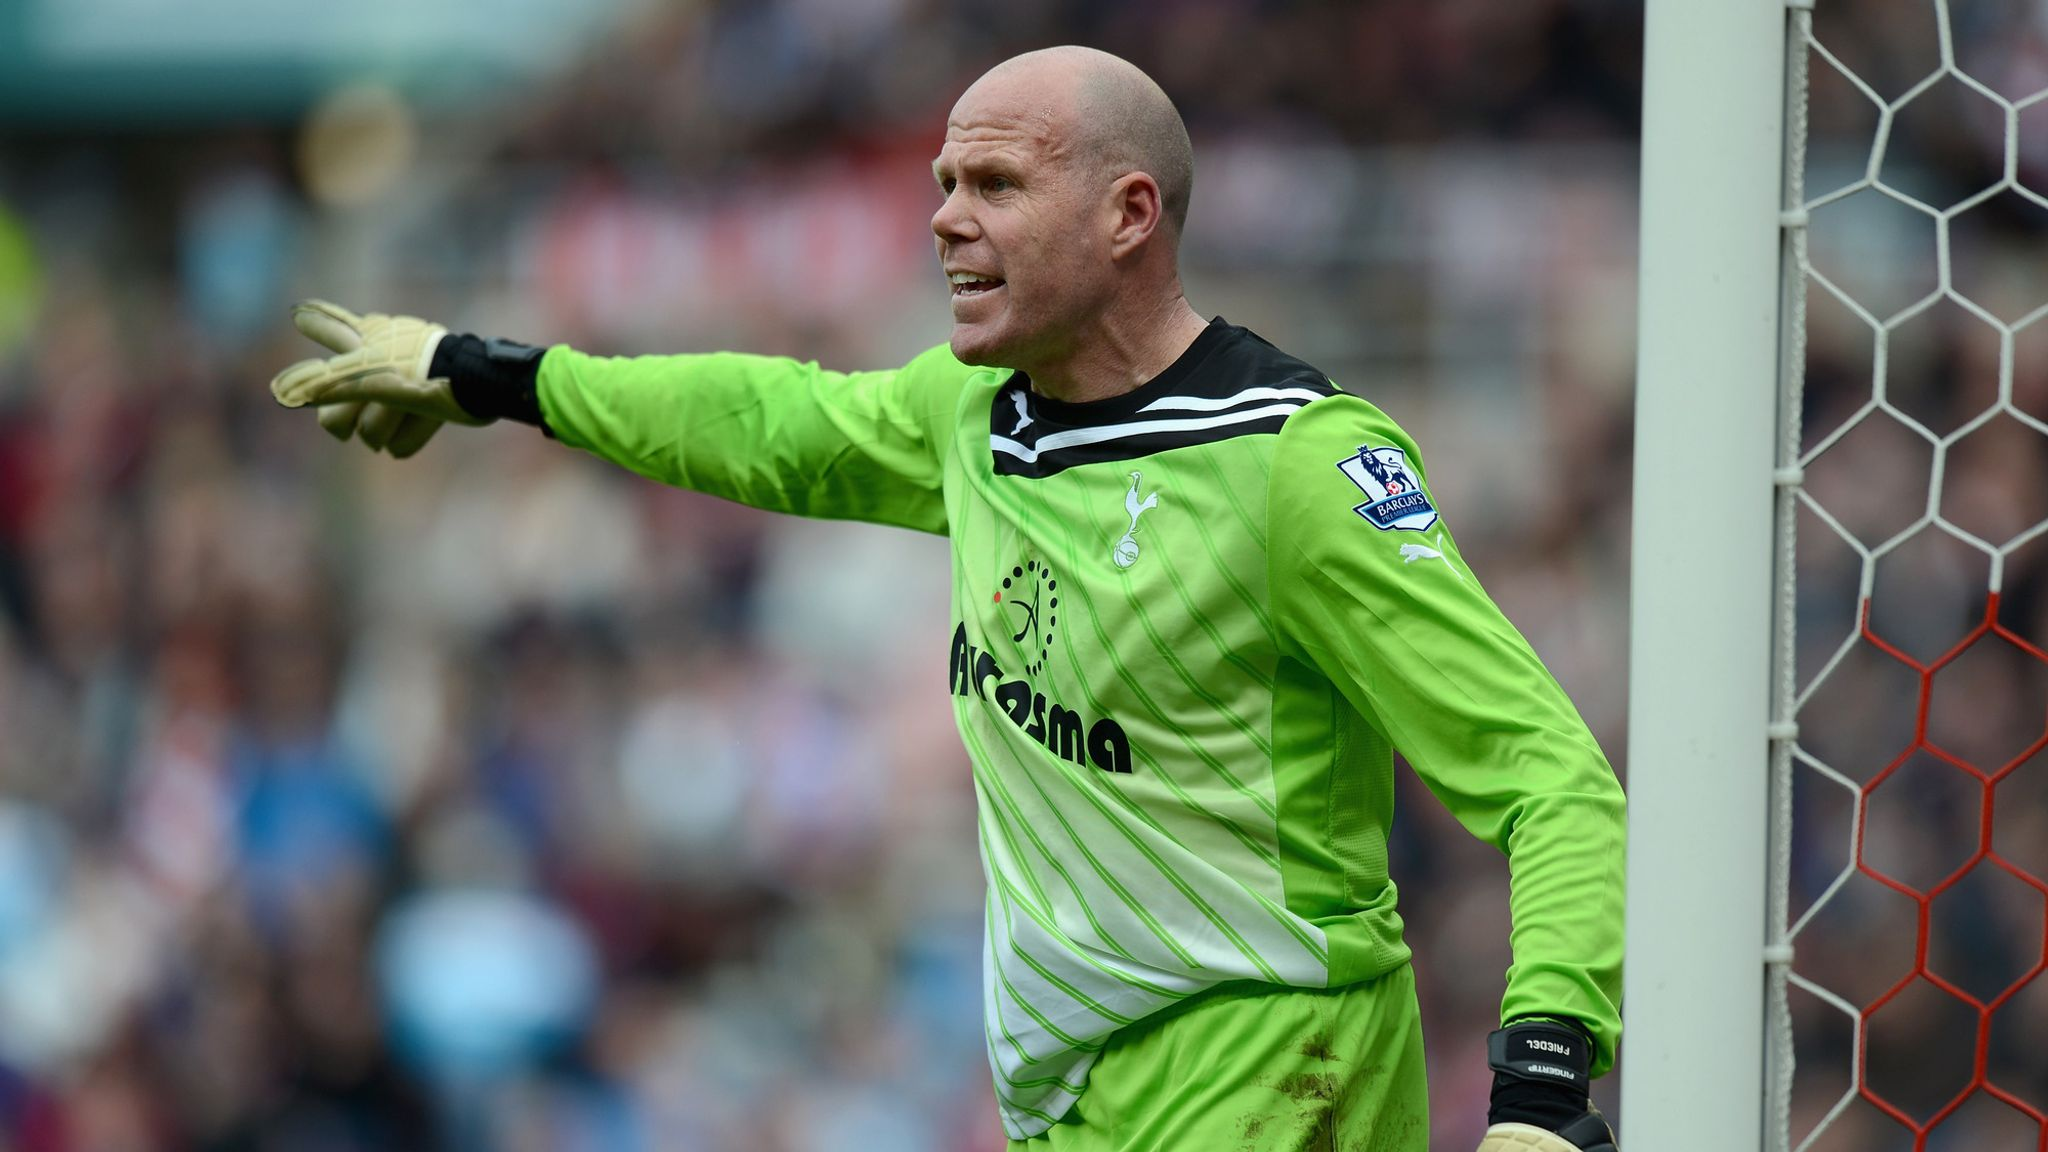 7514dadc73b Brad Friedel thanks Tottenham for help becoming top US coach | Football  News | Sky Sports